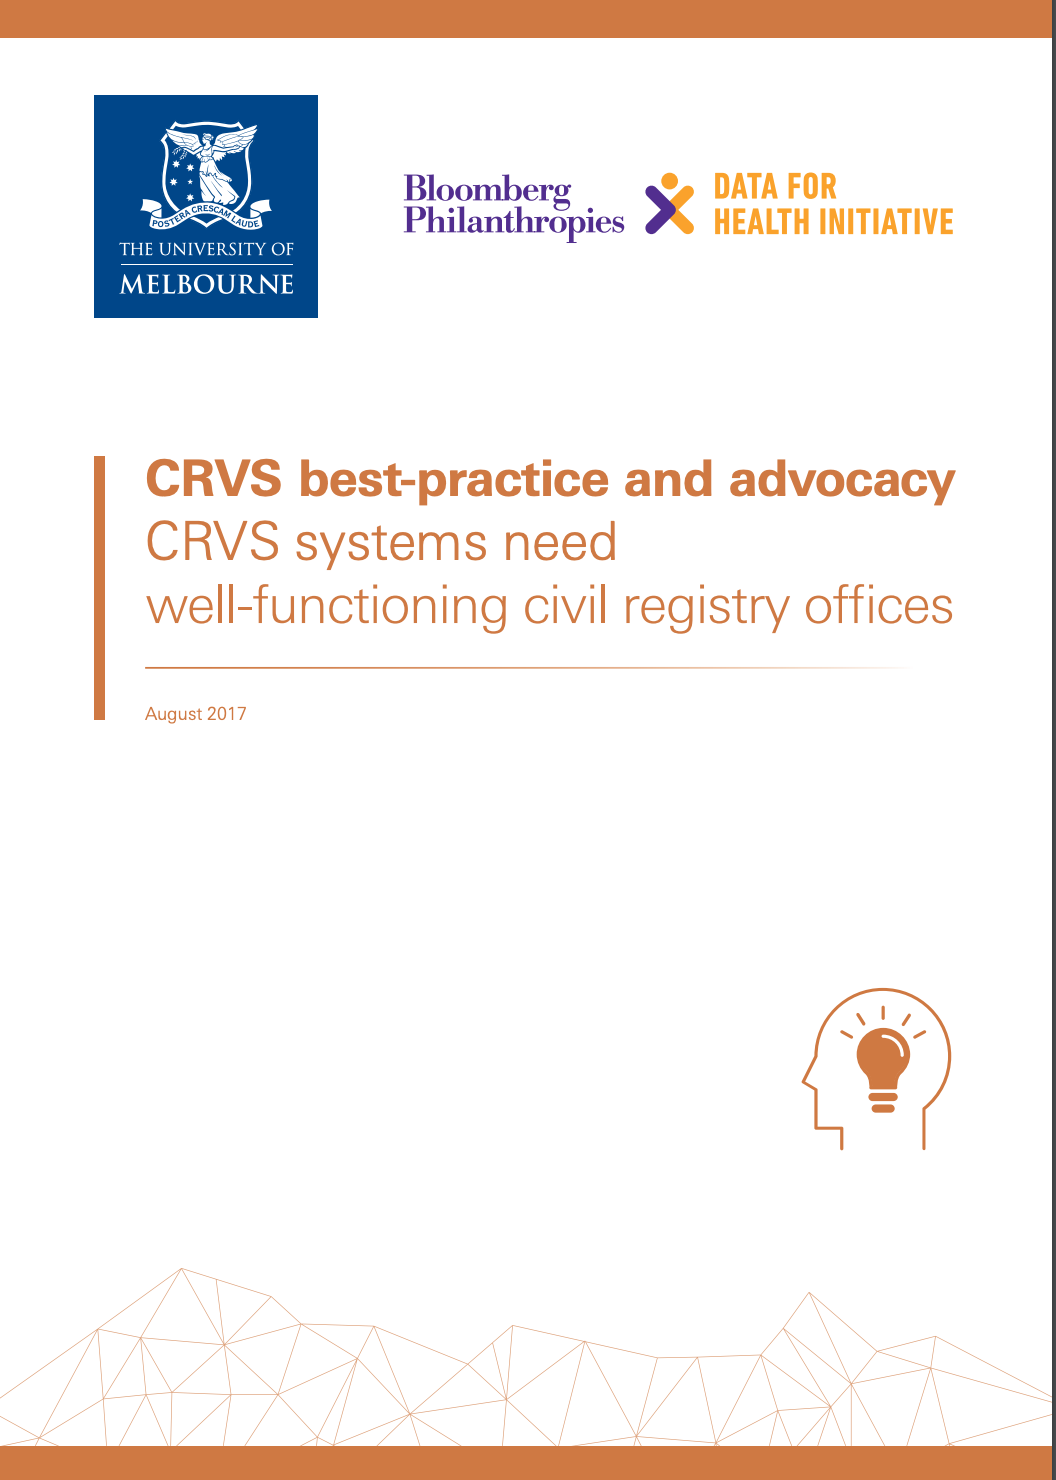 CRVS best-practice and advocacy CRVS systems need well-functioning civil registry offices thumbnail